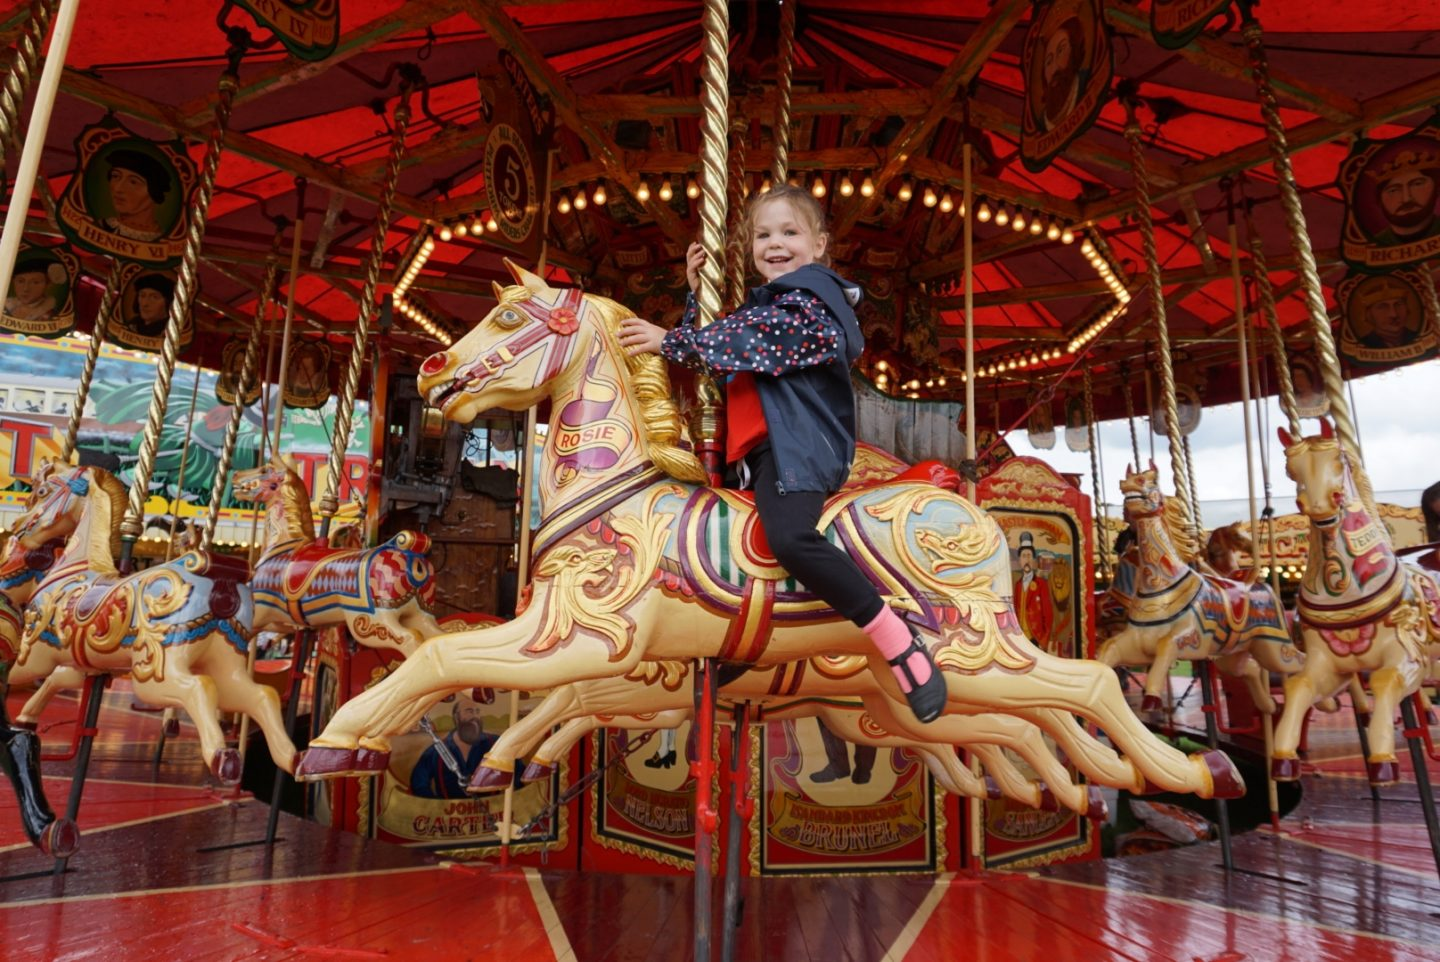 Carters Steam Fair with kids